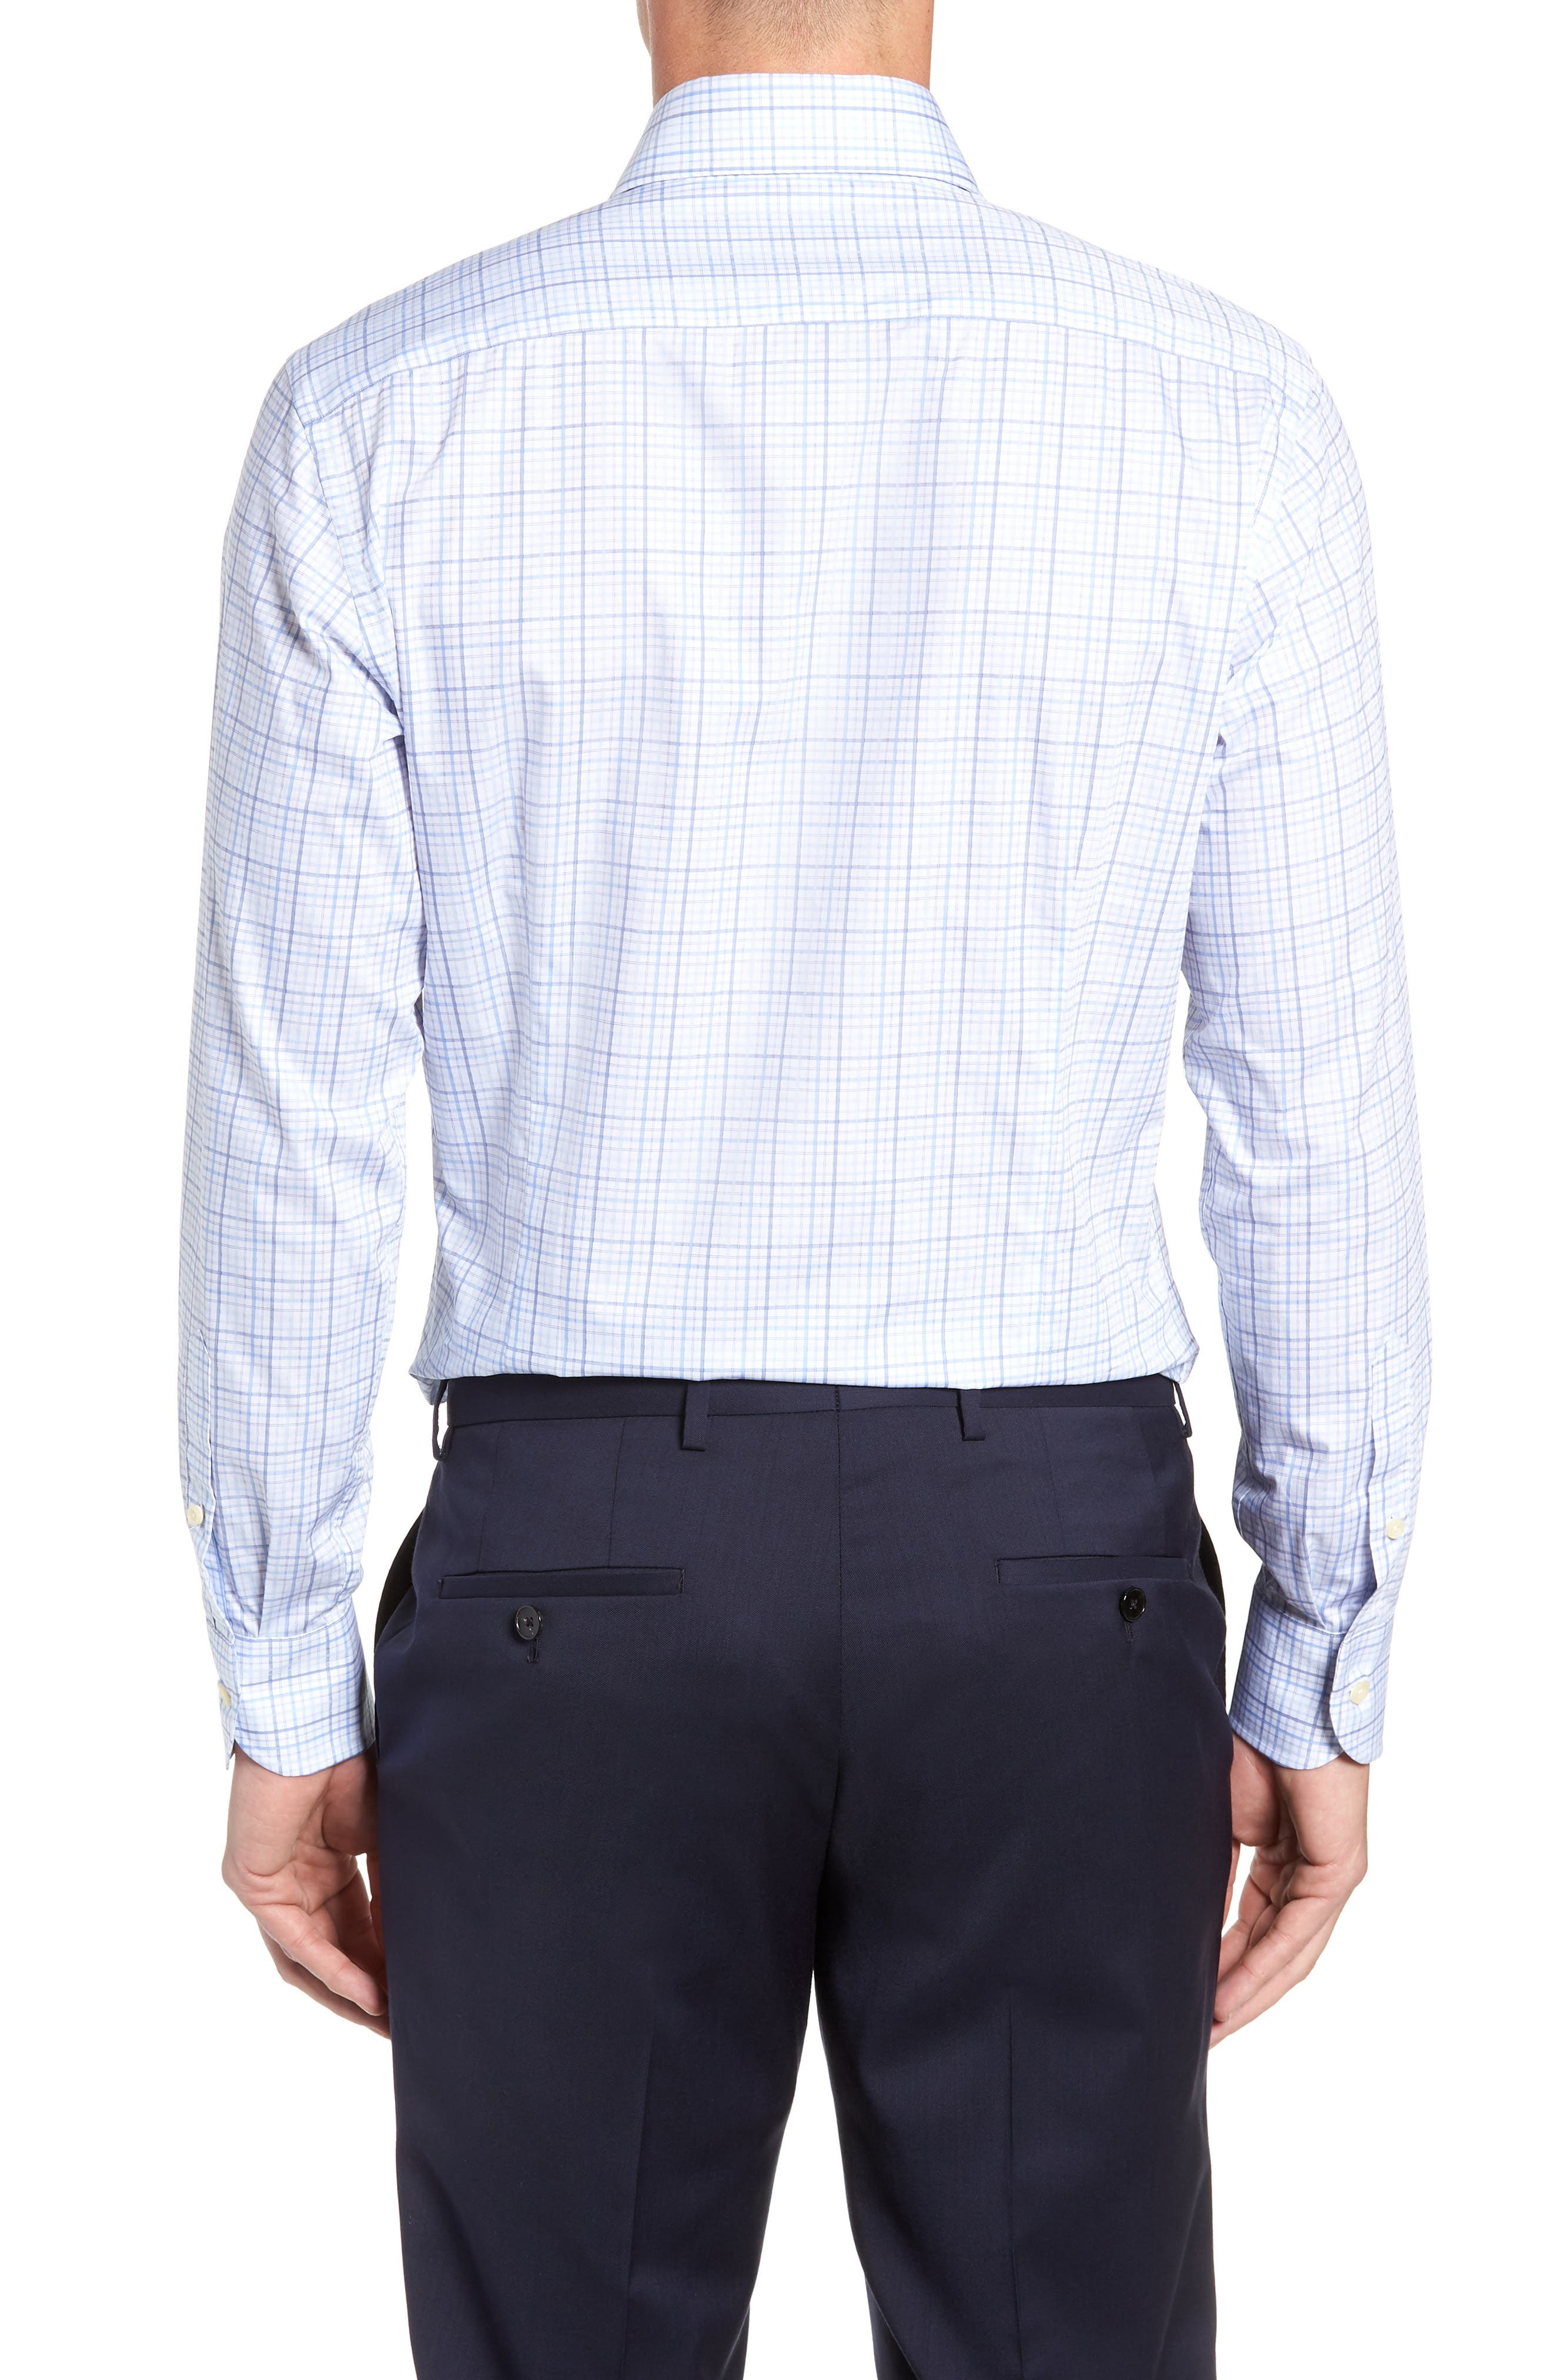 Drazin Trim Fit Check Dress Shirt,                             Alternate thumbnail 3, color,                             BLUE